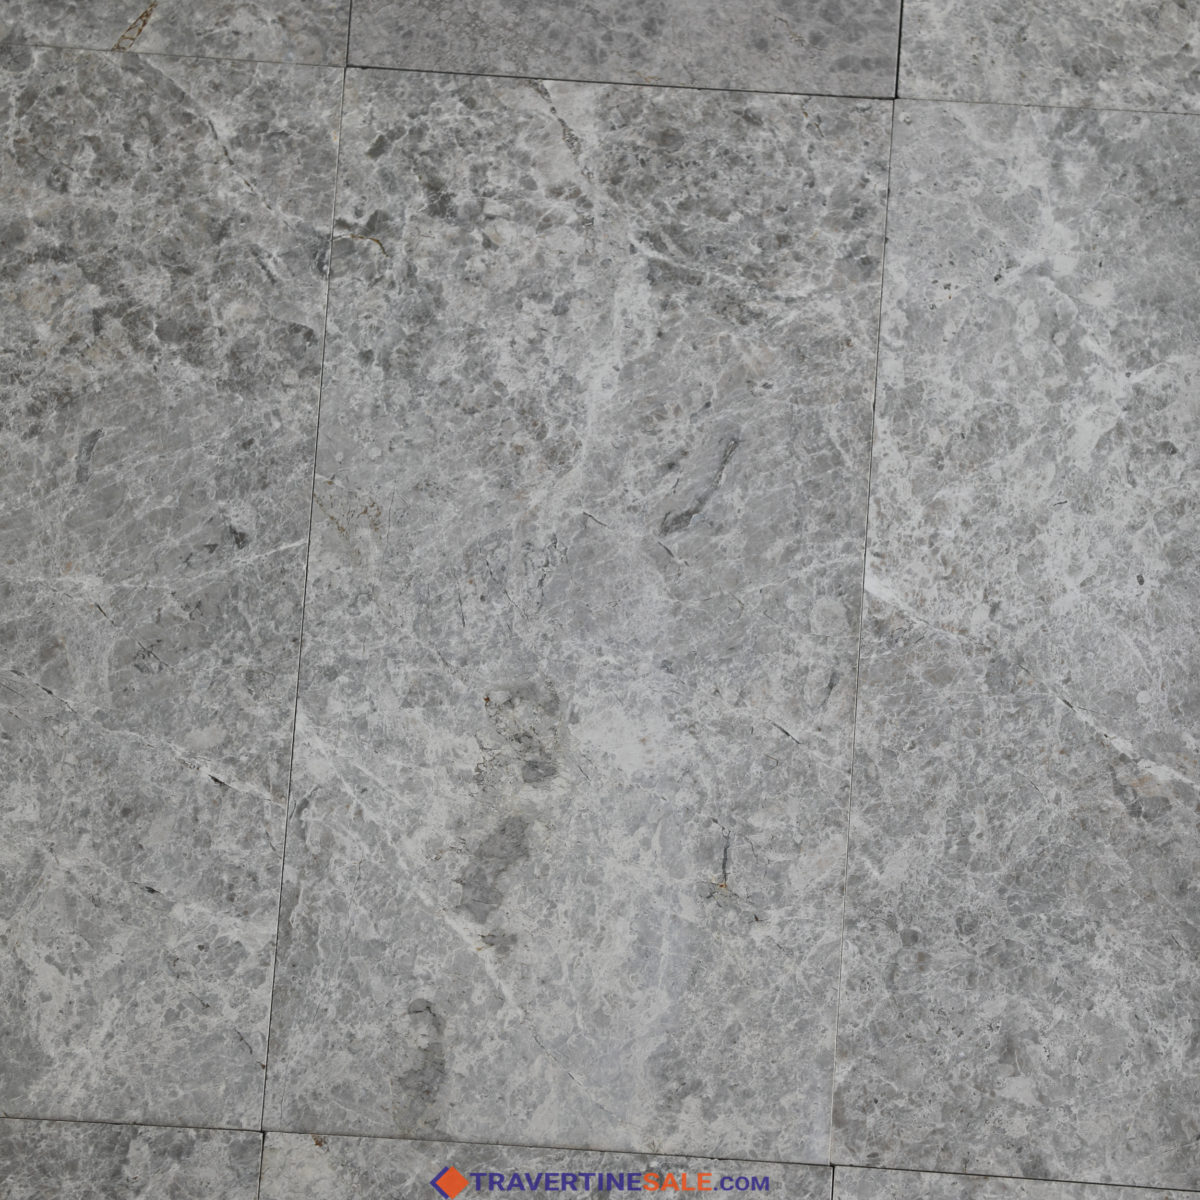 tundra gray marble light polished with grey and silver colors